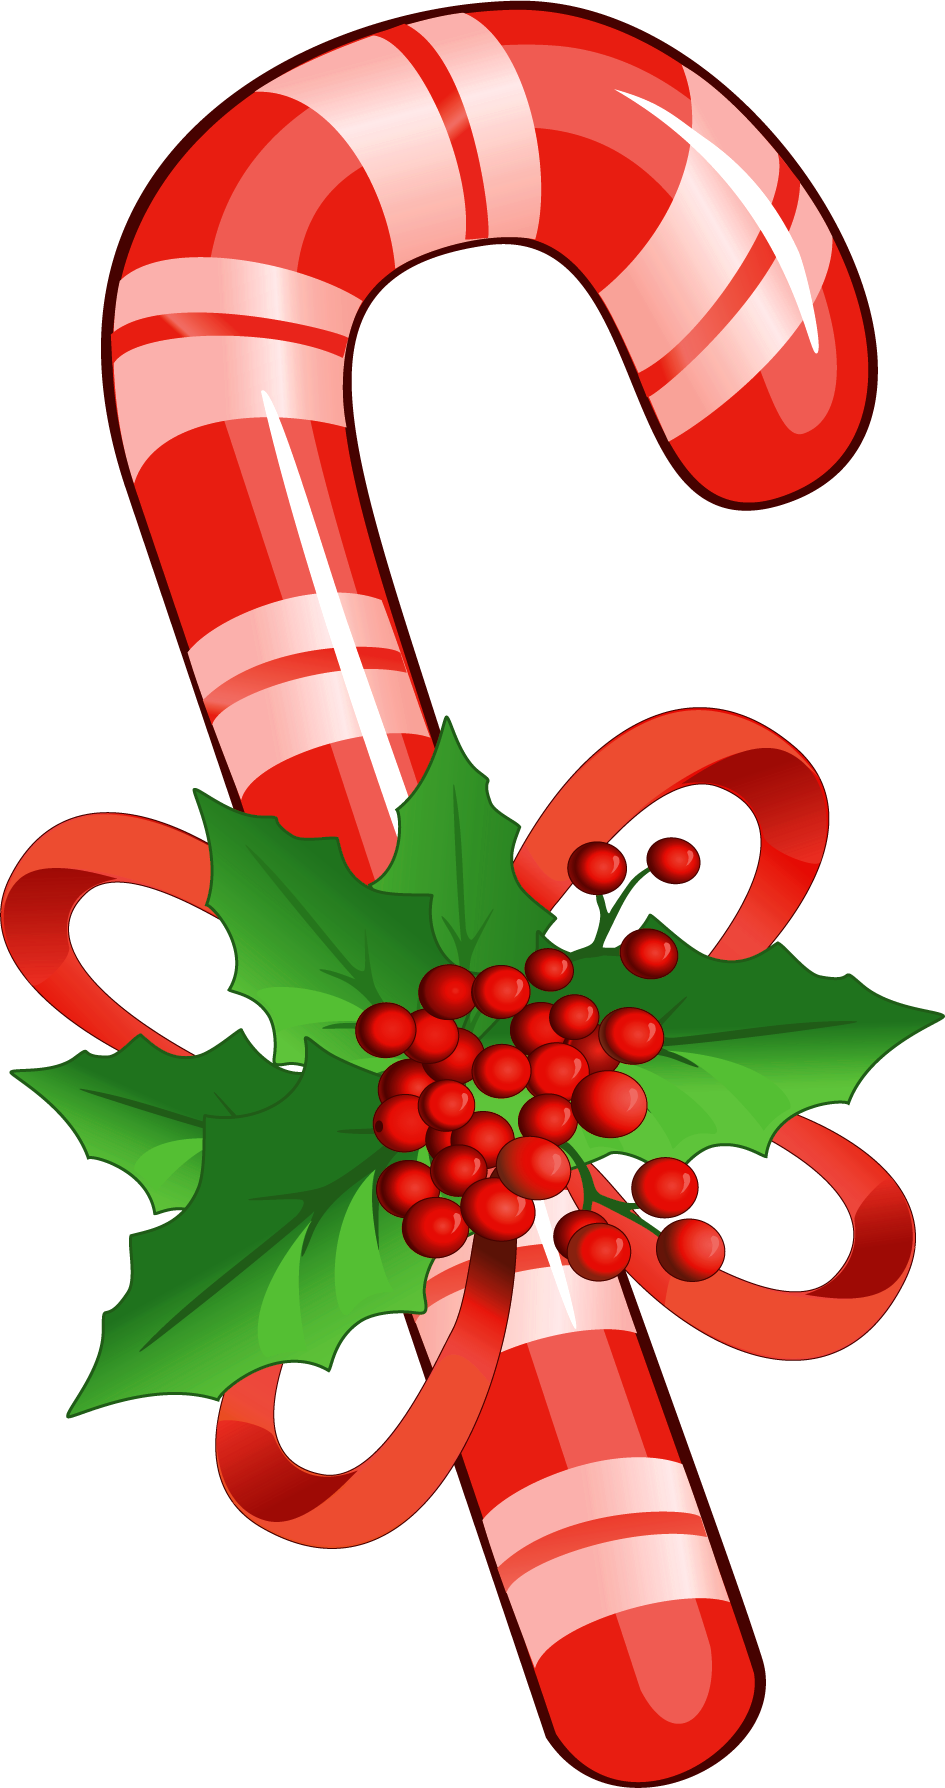 Candy Cane Clipart-Candy cane clipart-10